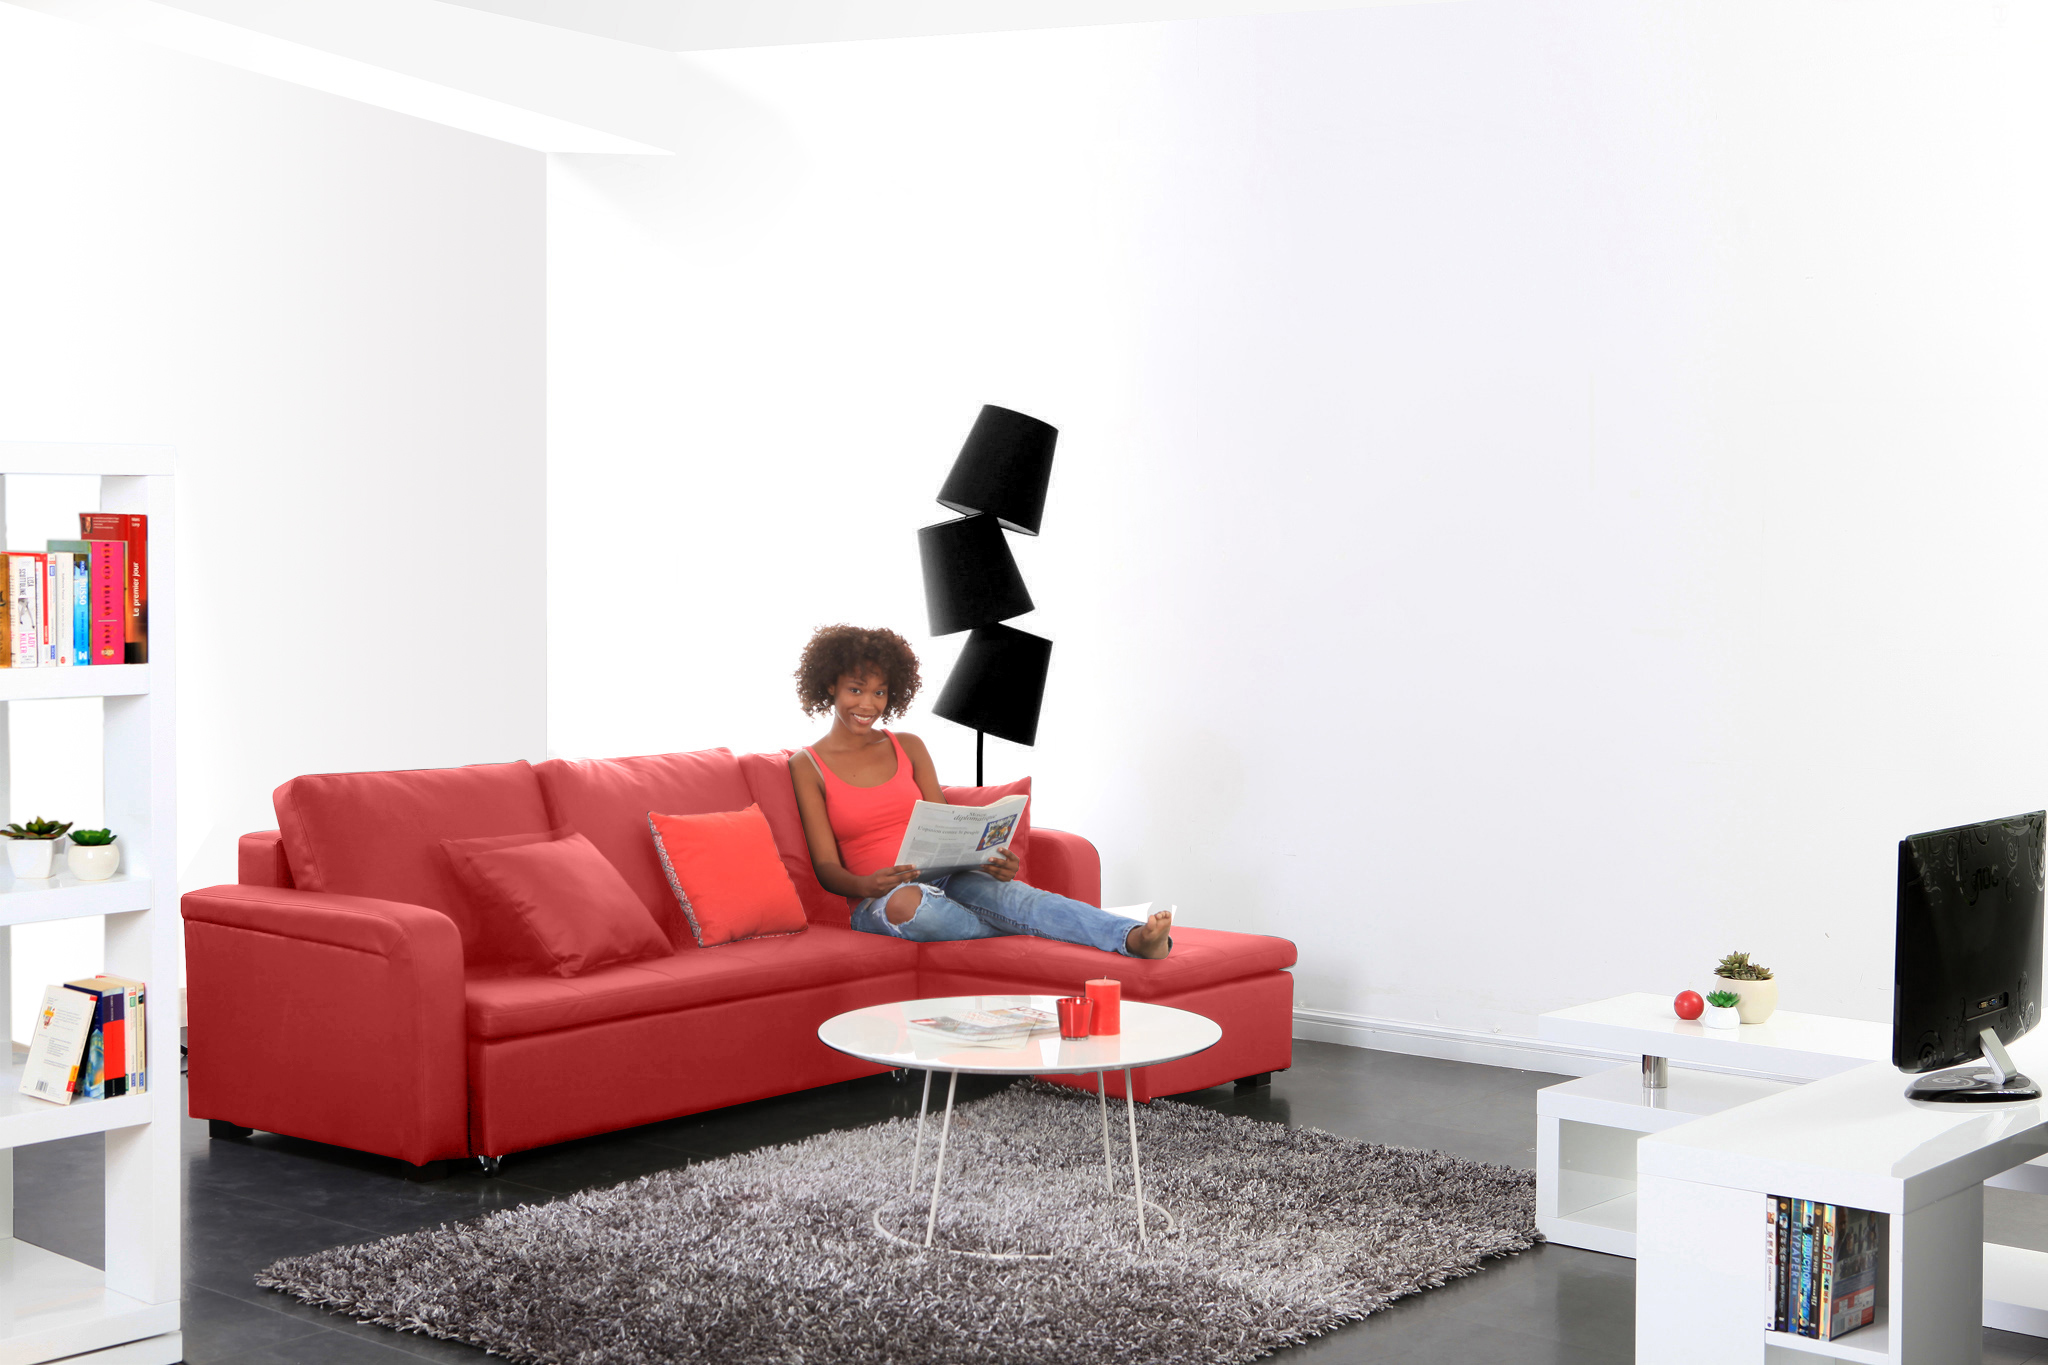 tout savoir sur la couleur rouge conseil d co. Black Bedroom Furniture Sets. Home Design Ideas